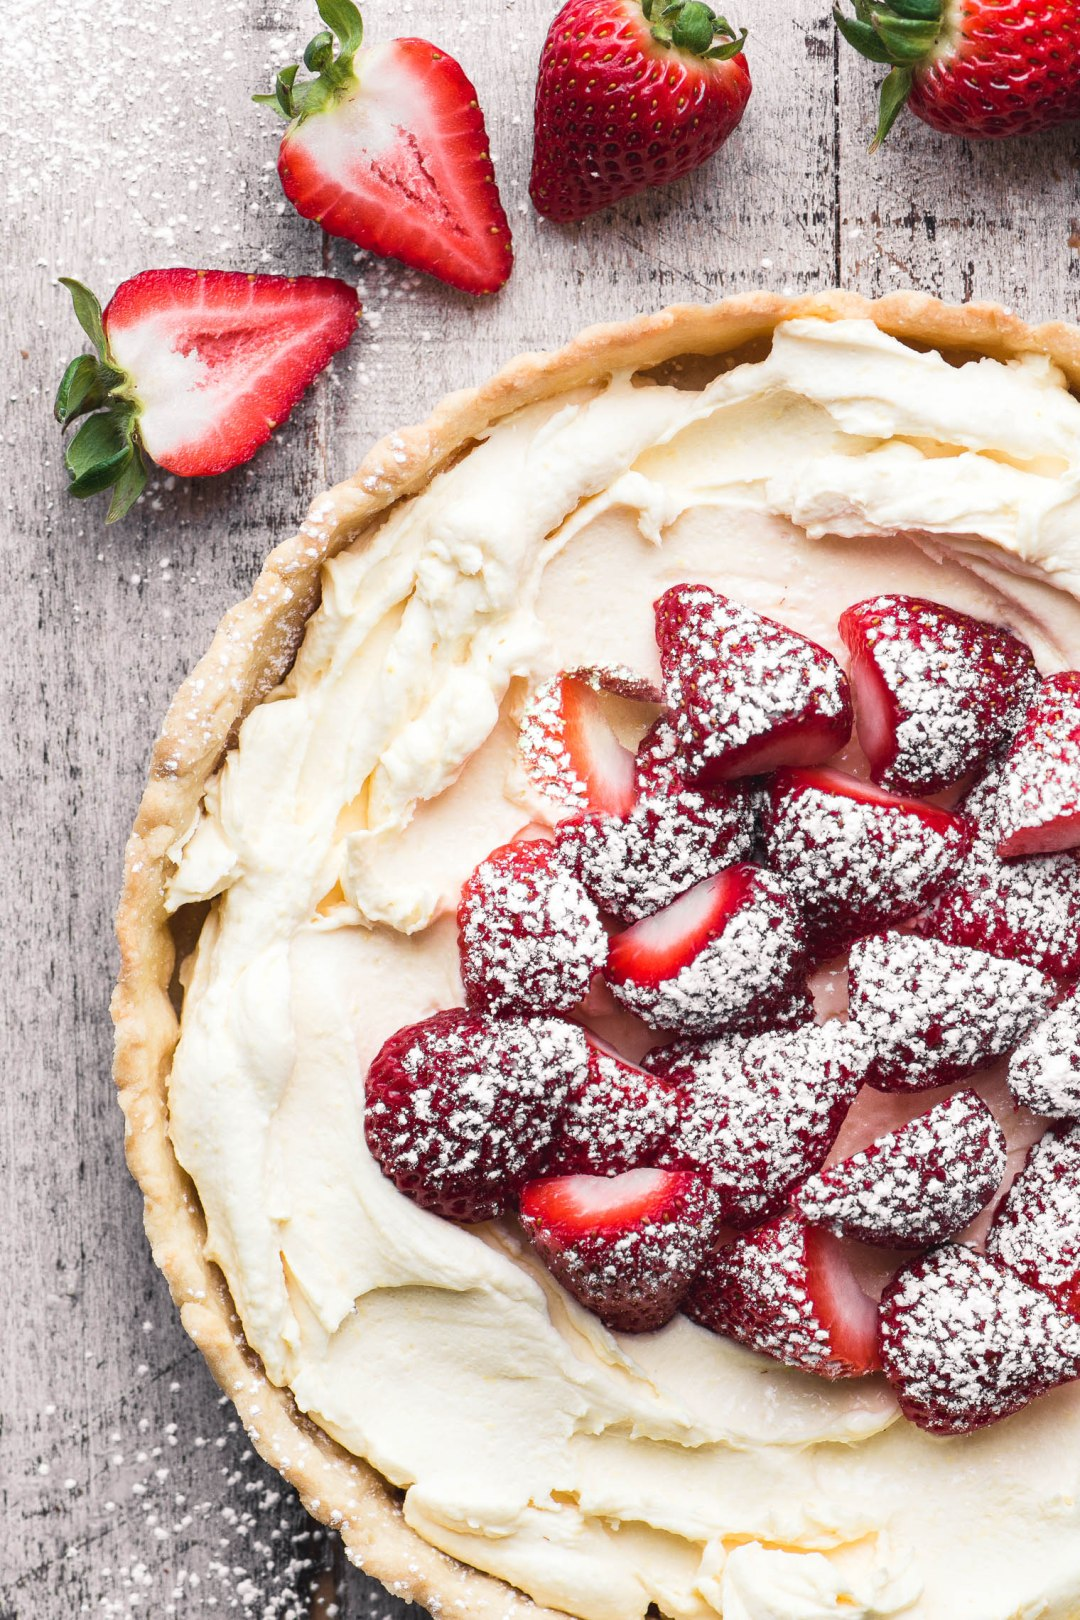 strawberries and cream tart on a wooden board surrounded by fresh strawberries